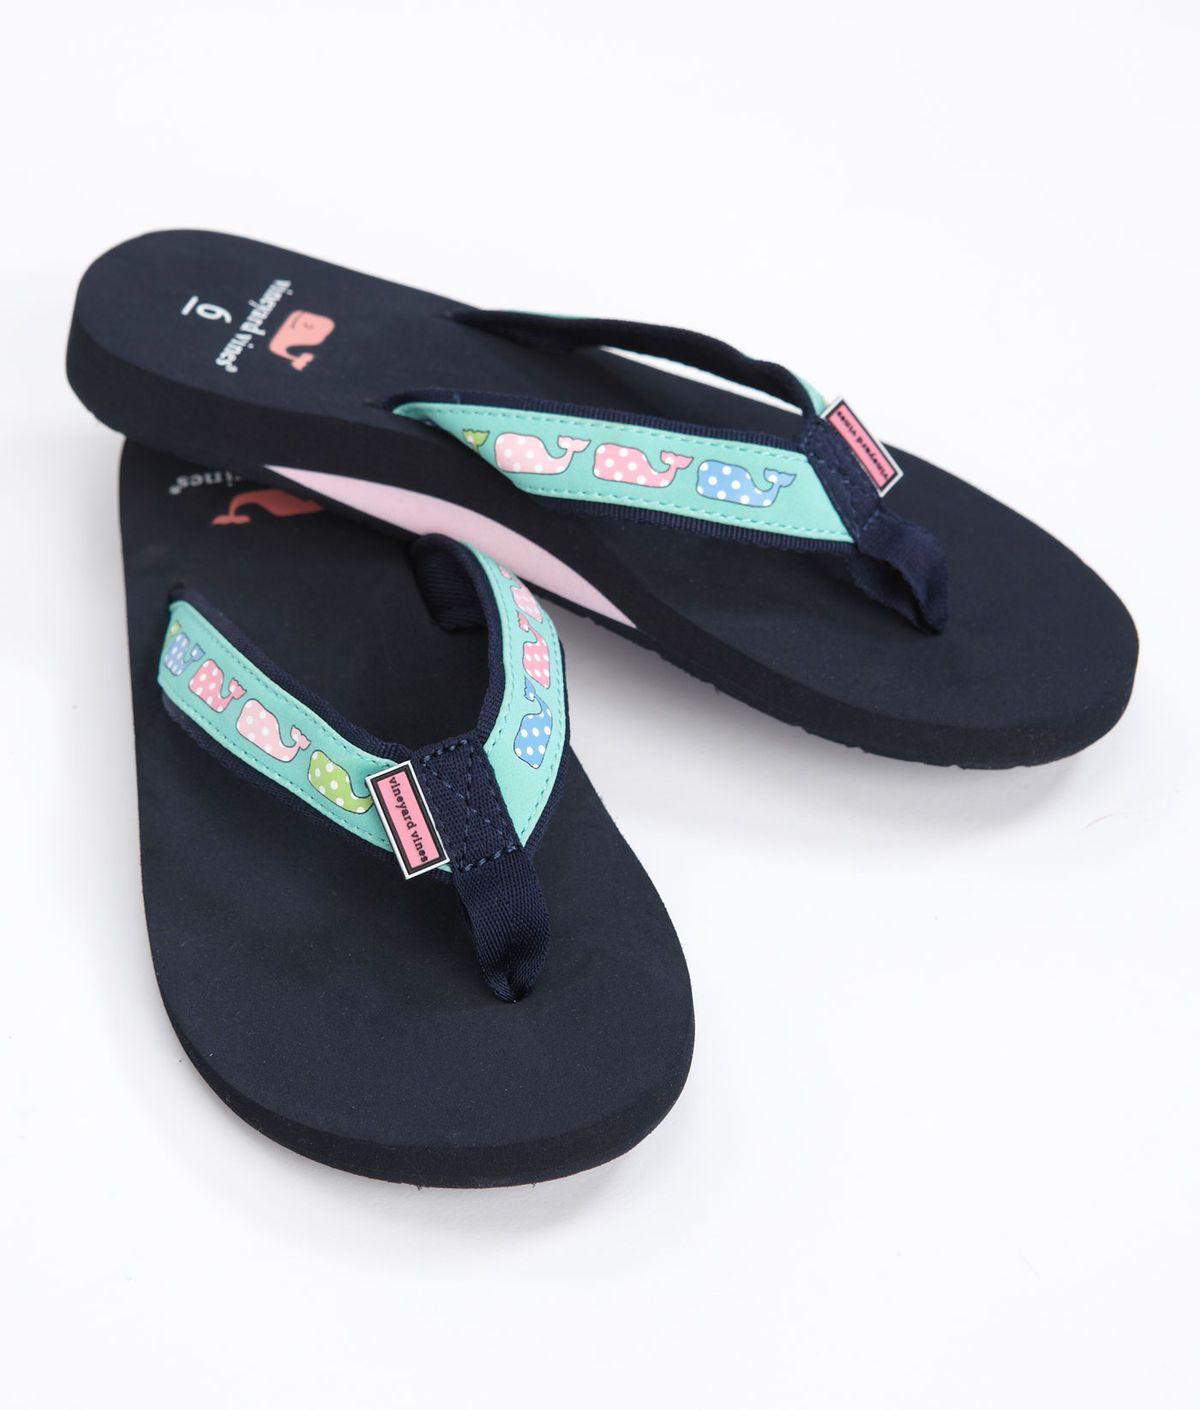 4c347fd75955 Polka Dot Whale Flip Flops from Vineyard Vines... I WANT THESE SO ...